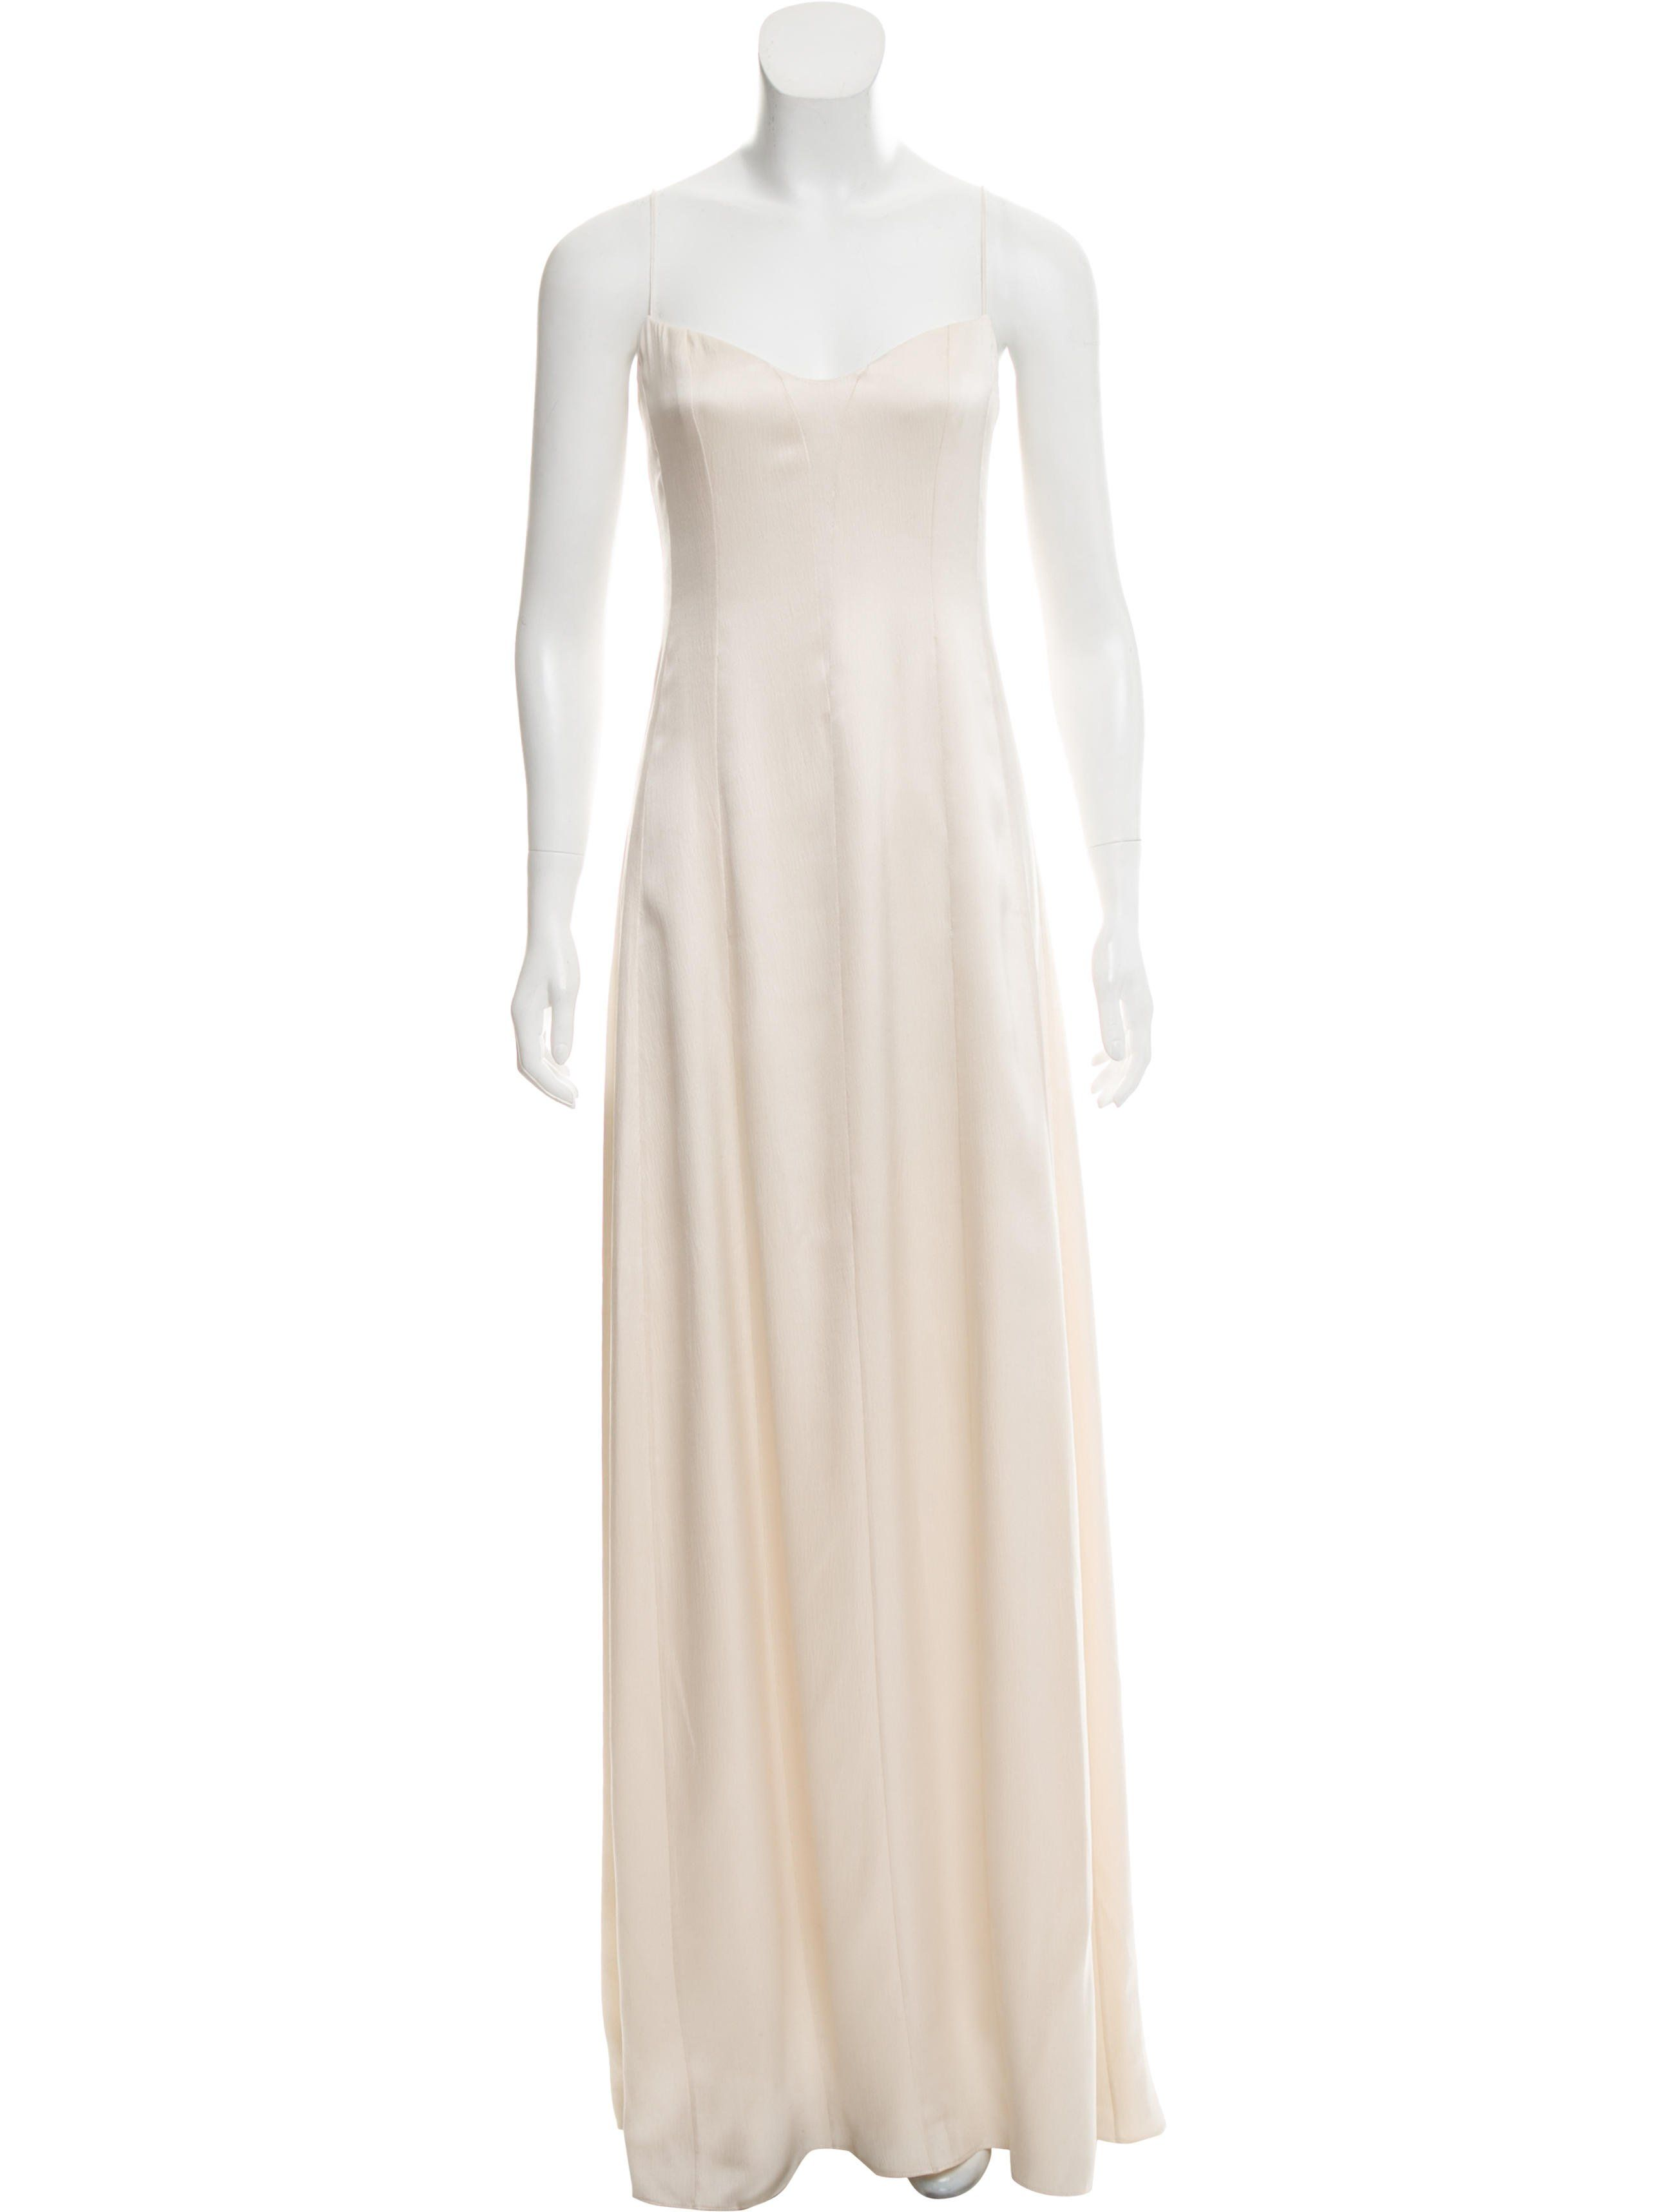 b3a7712bbe Creme Narciso Rodriguez sleeveless evening dress with spaghetti straps